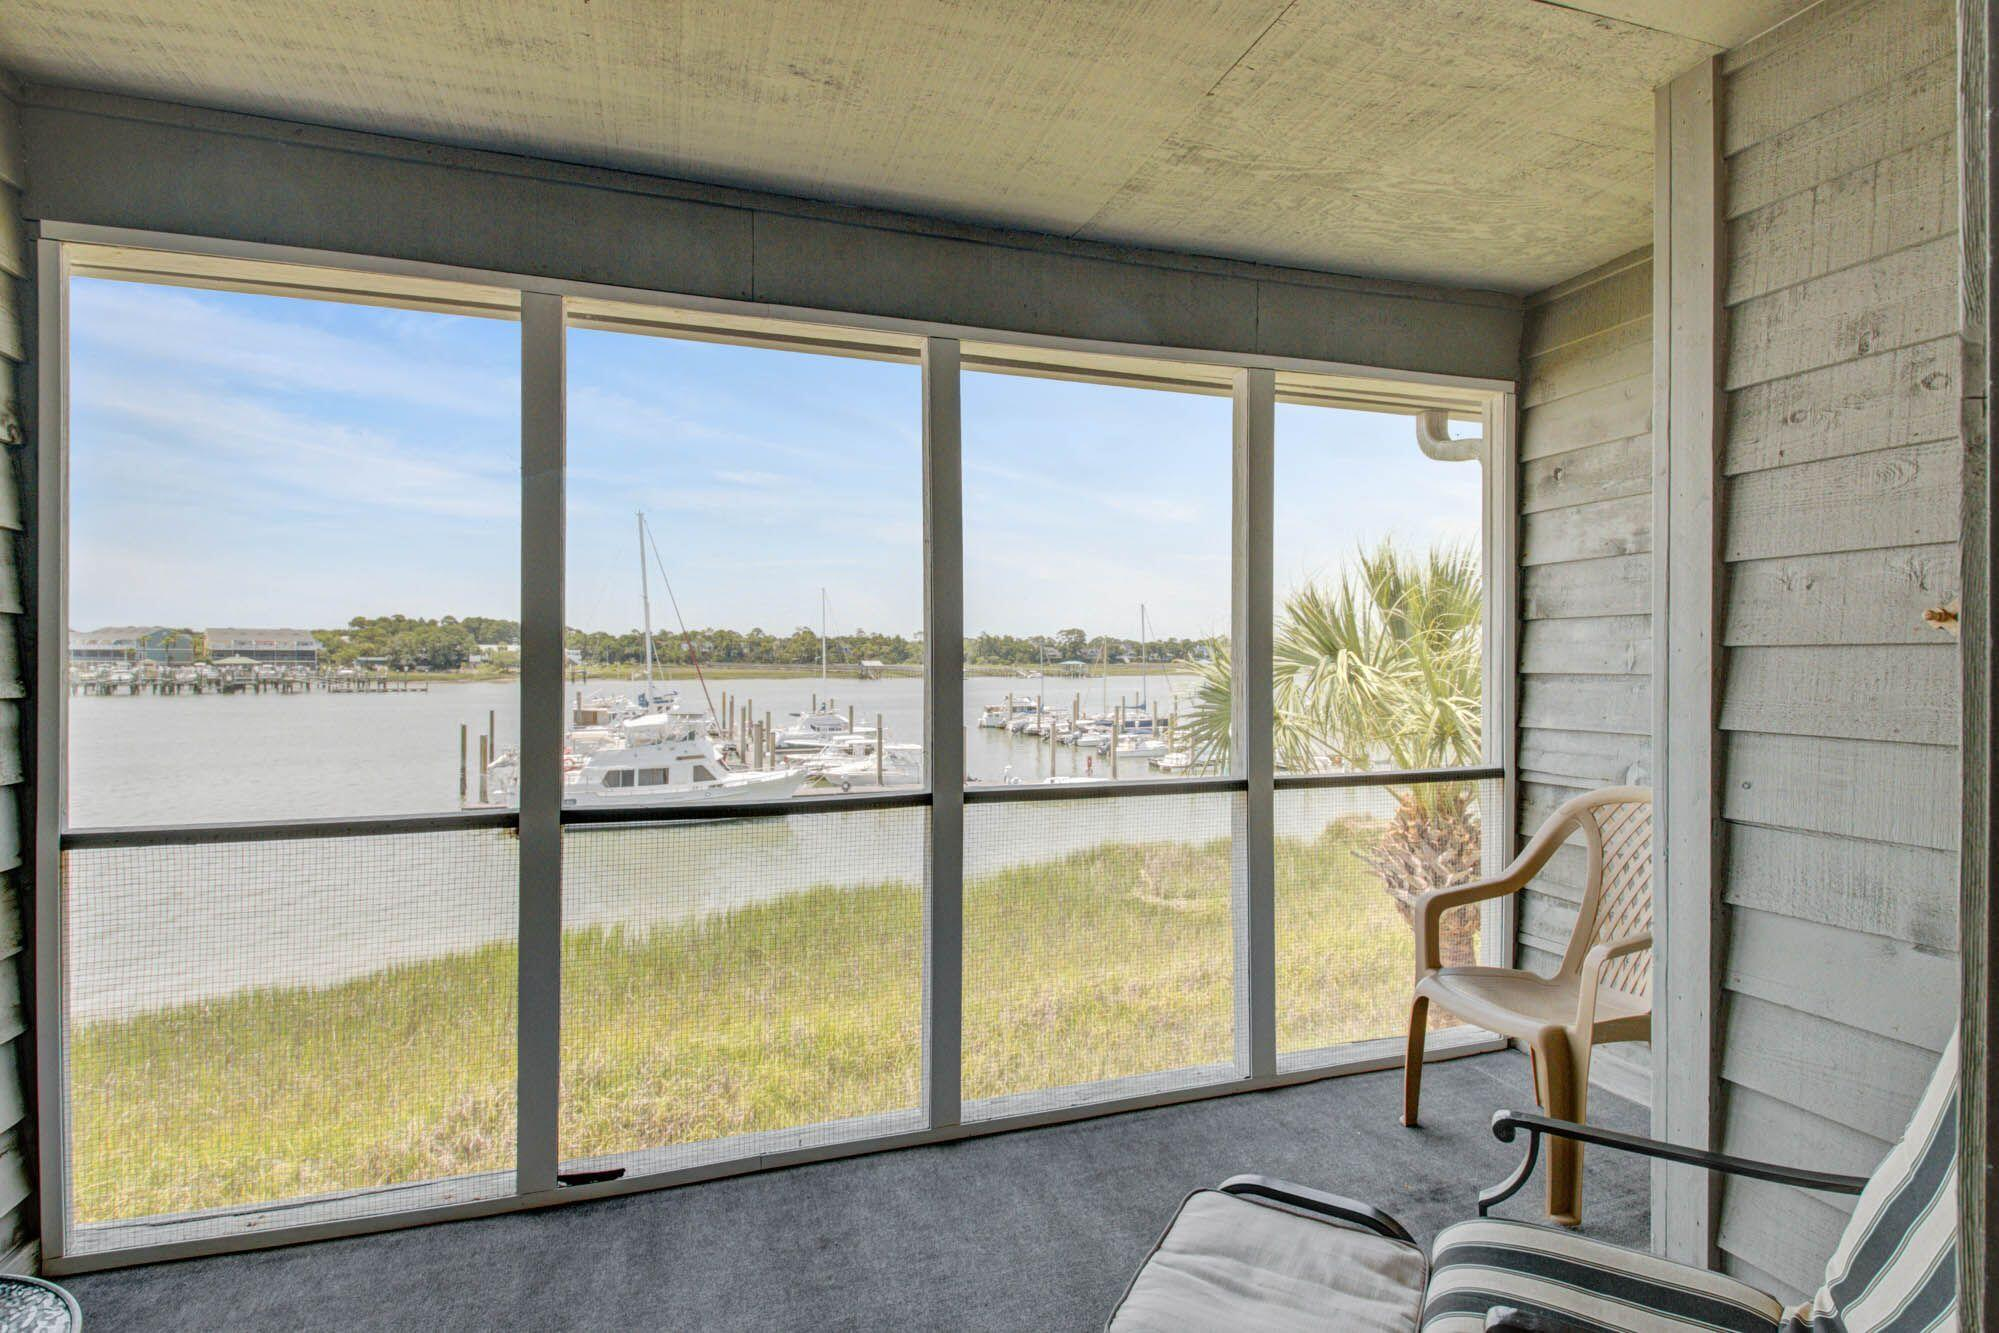 Mariners Cay Homes For Sale - 51 Mariners Cay, Folly Beach, SC - 37